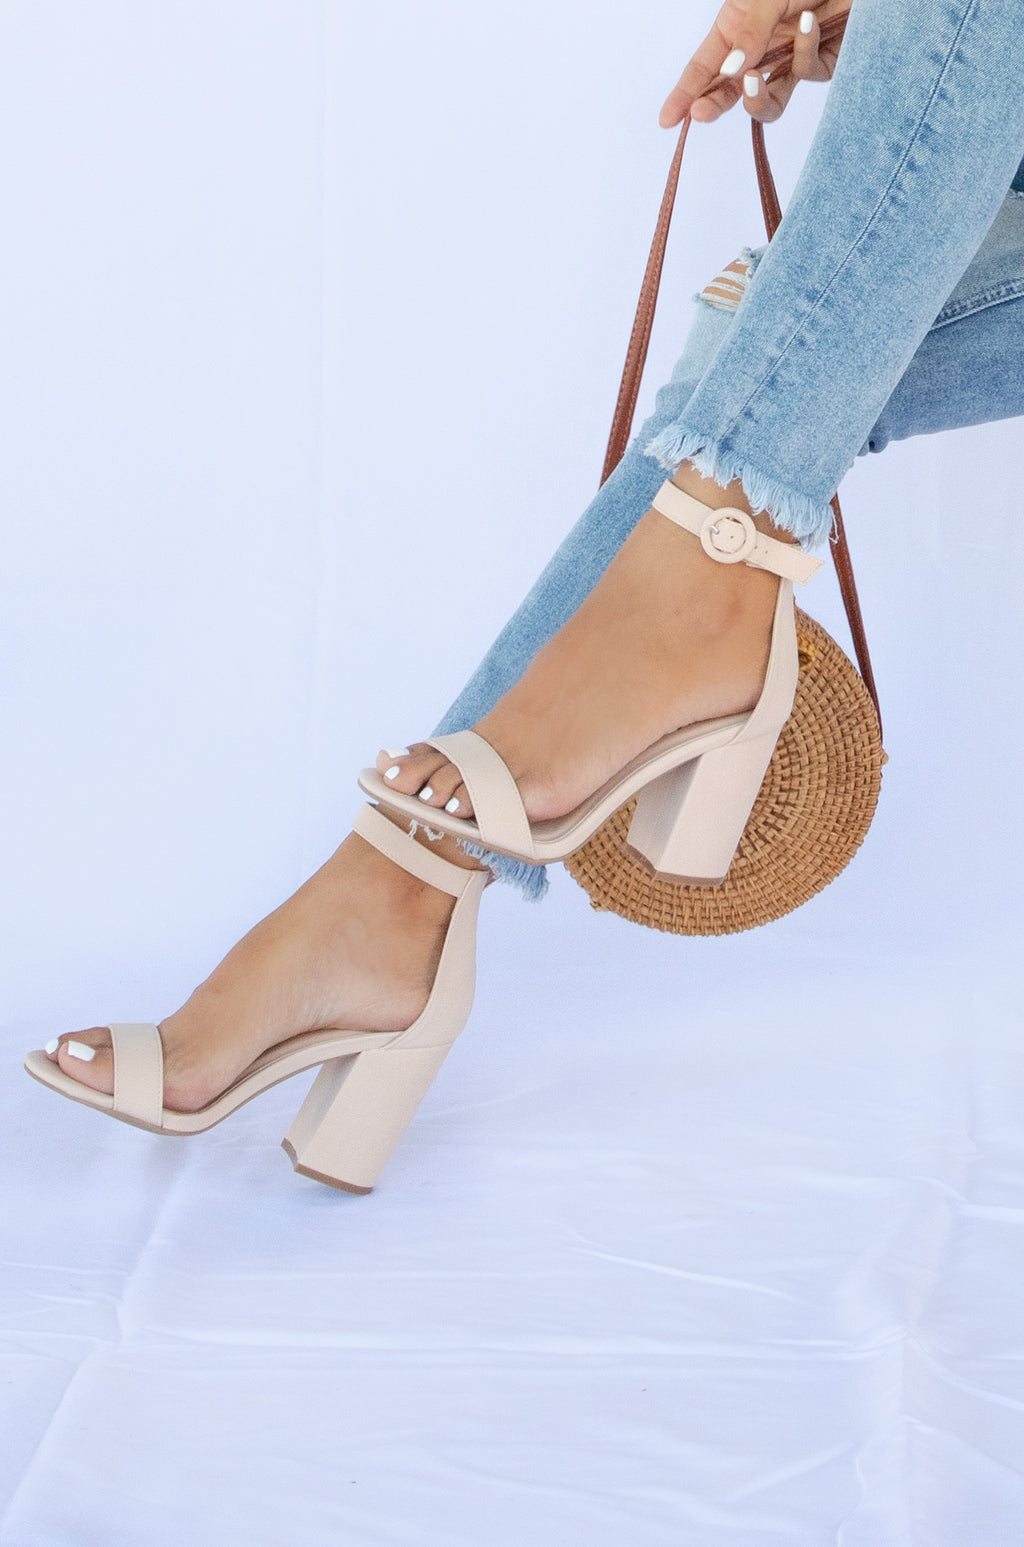 Lost In Love - Nude Ankle Strap Heels